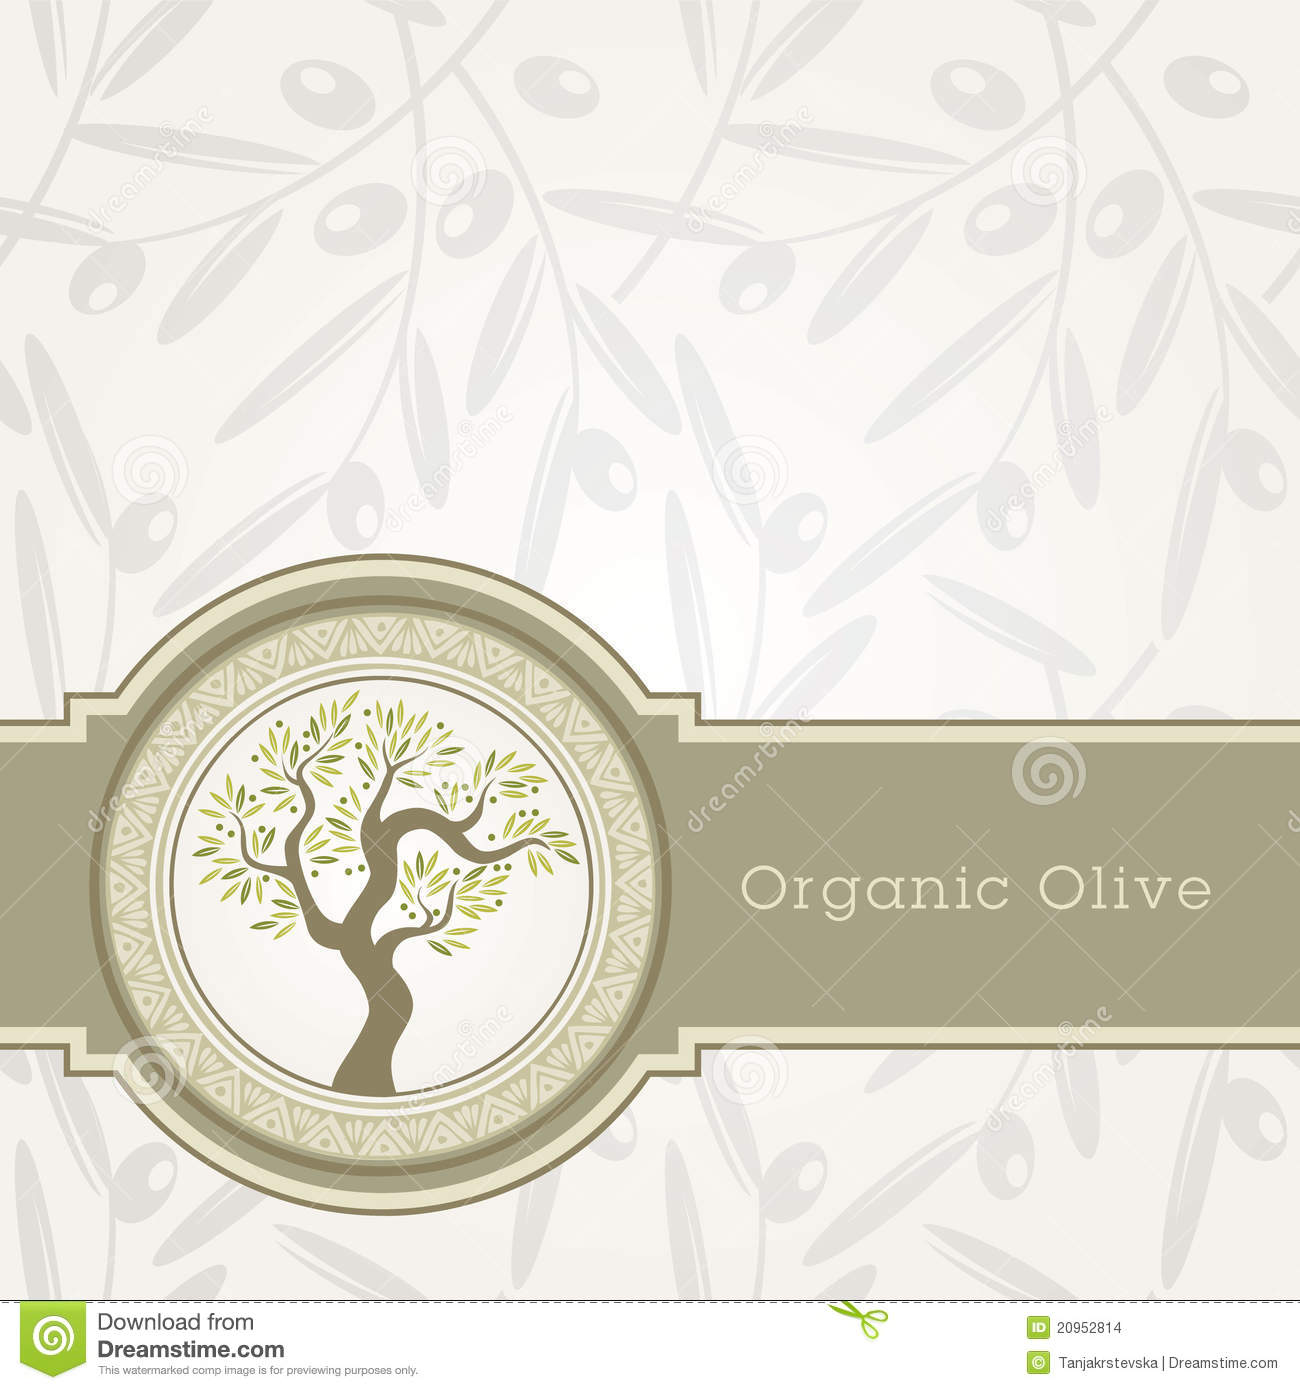 Olive oil label template stock vector. Illustration of element ...